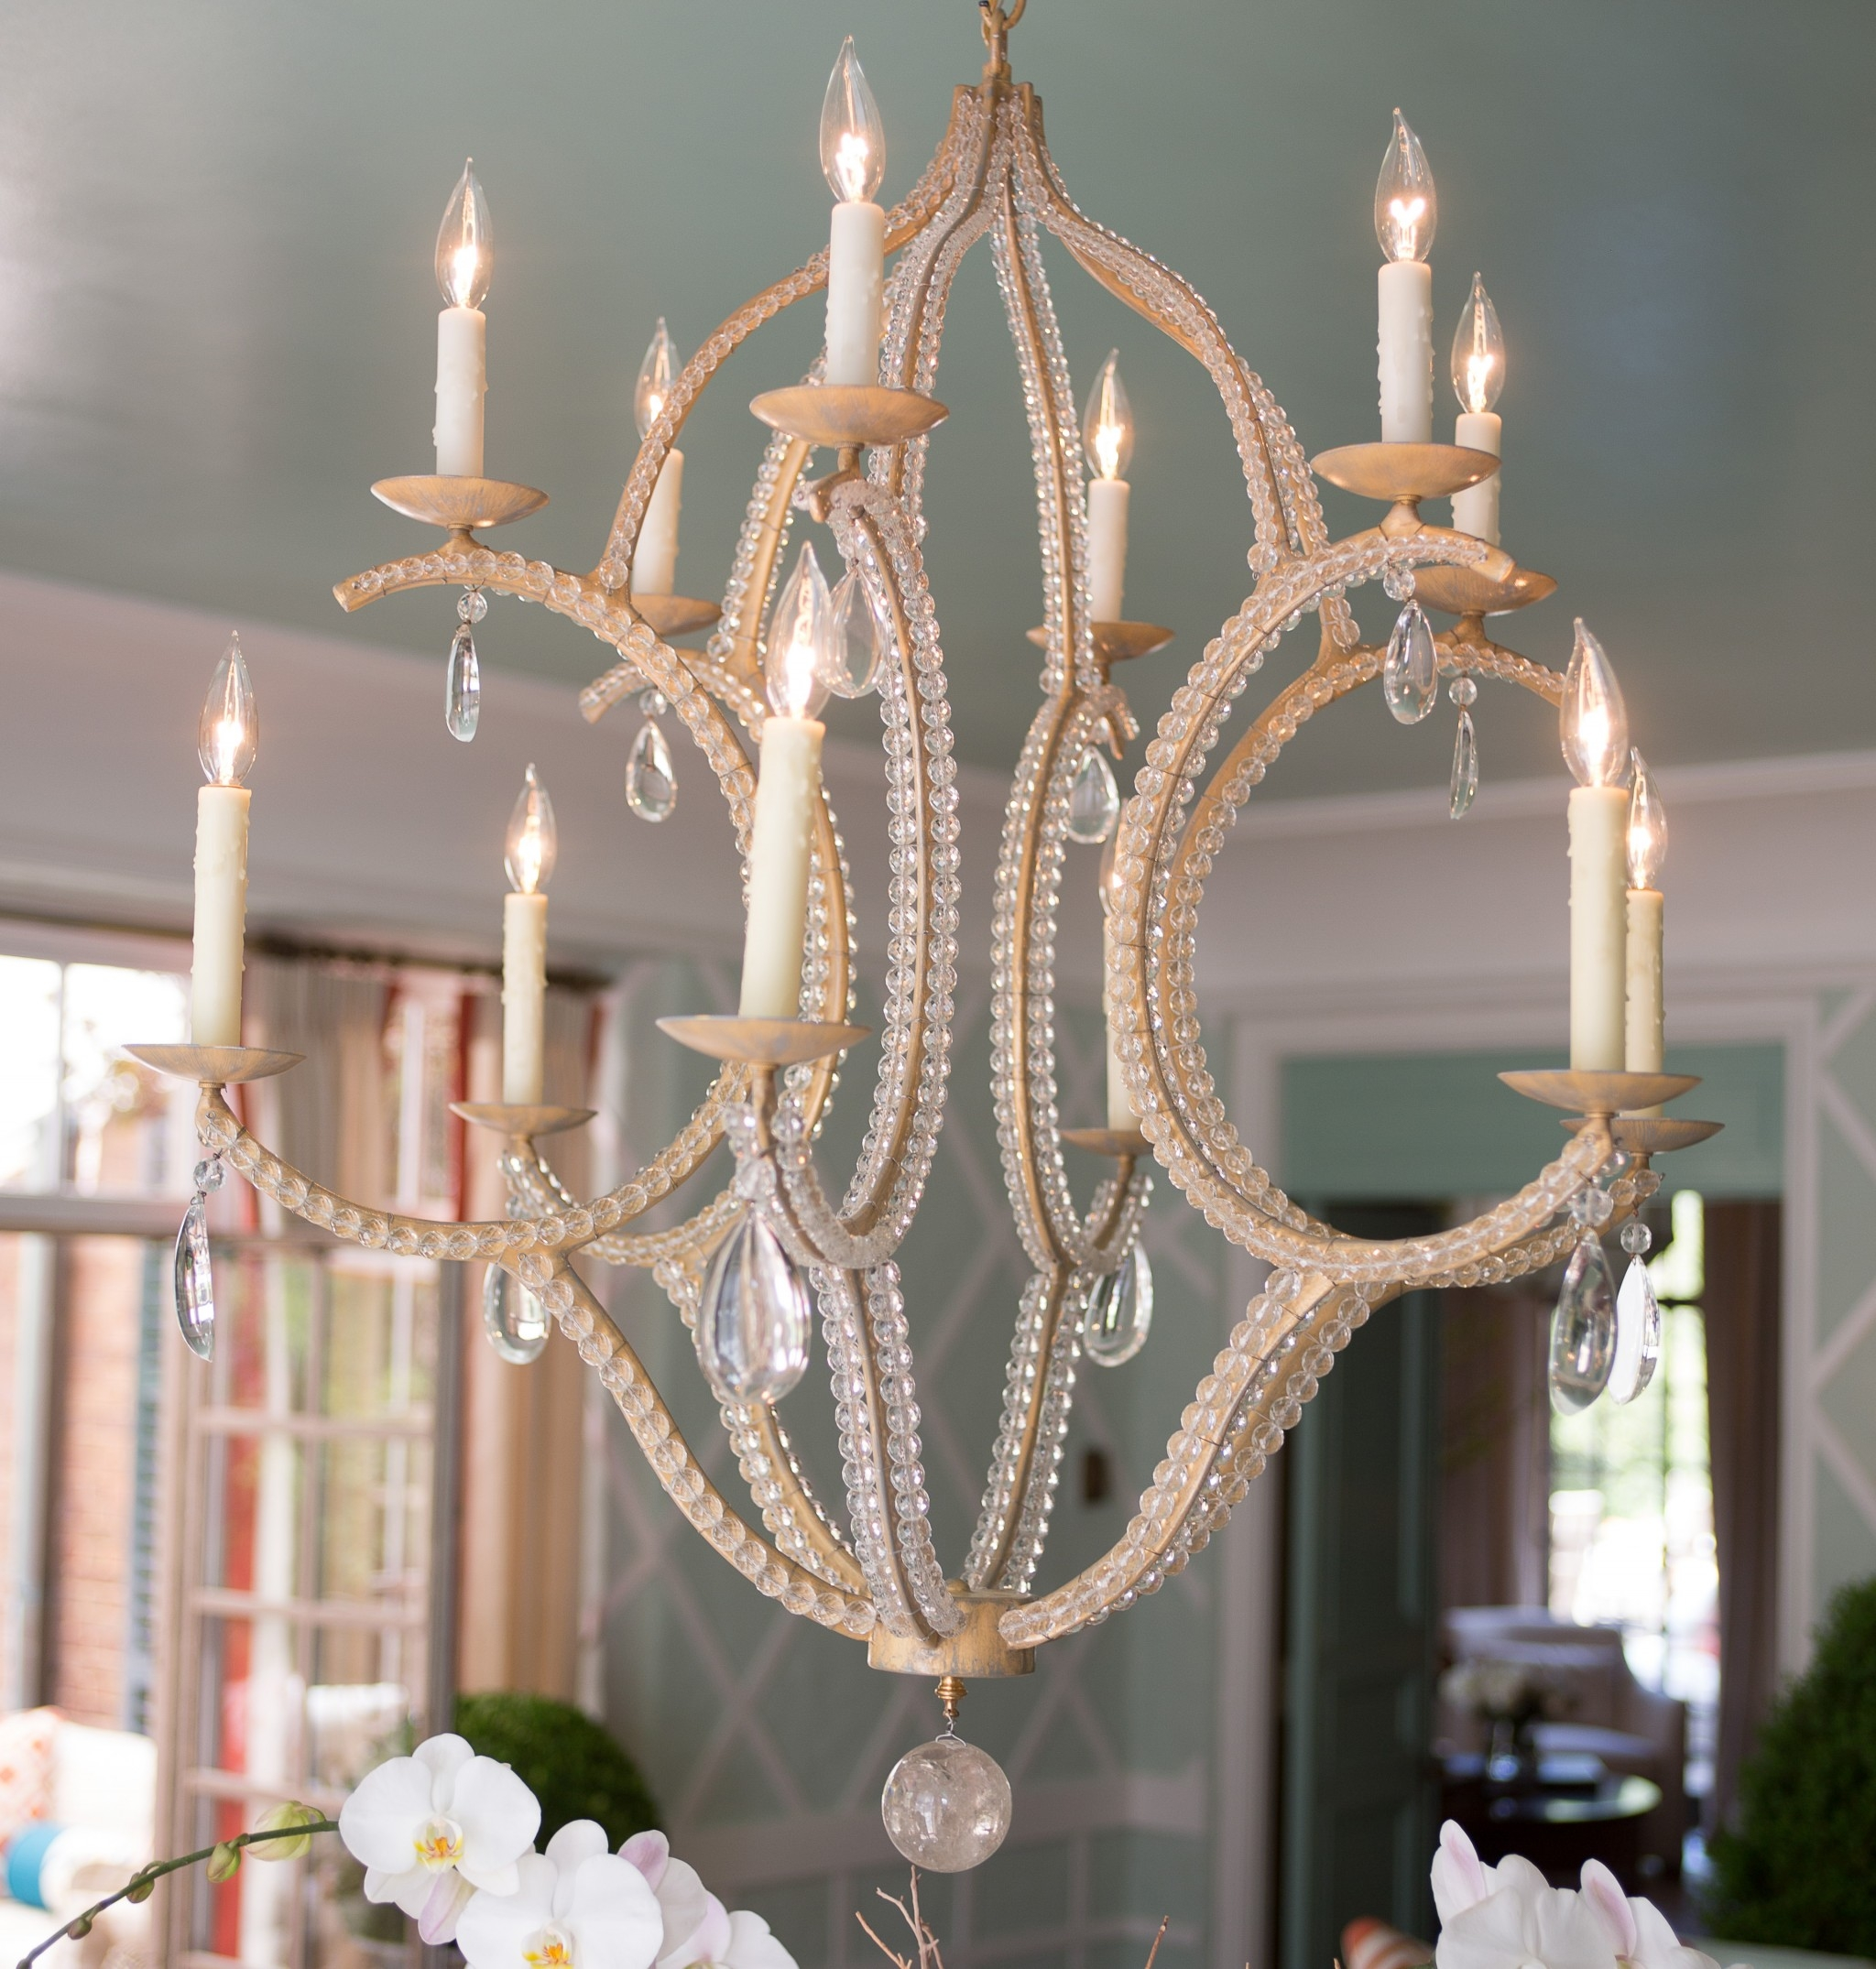 25 best collection of chinoiserie chandeliers chandelier ideas florian chandelier niermann weeks throughout chinoiserie chandeliers image 11 of 25 aloadofball Choice Image